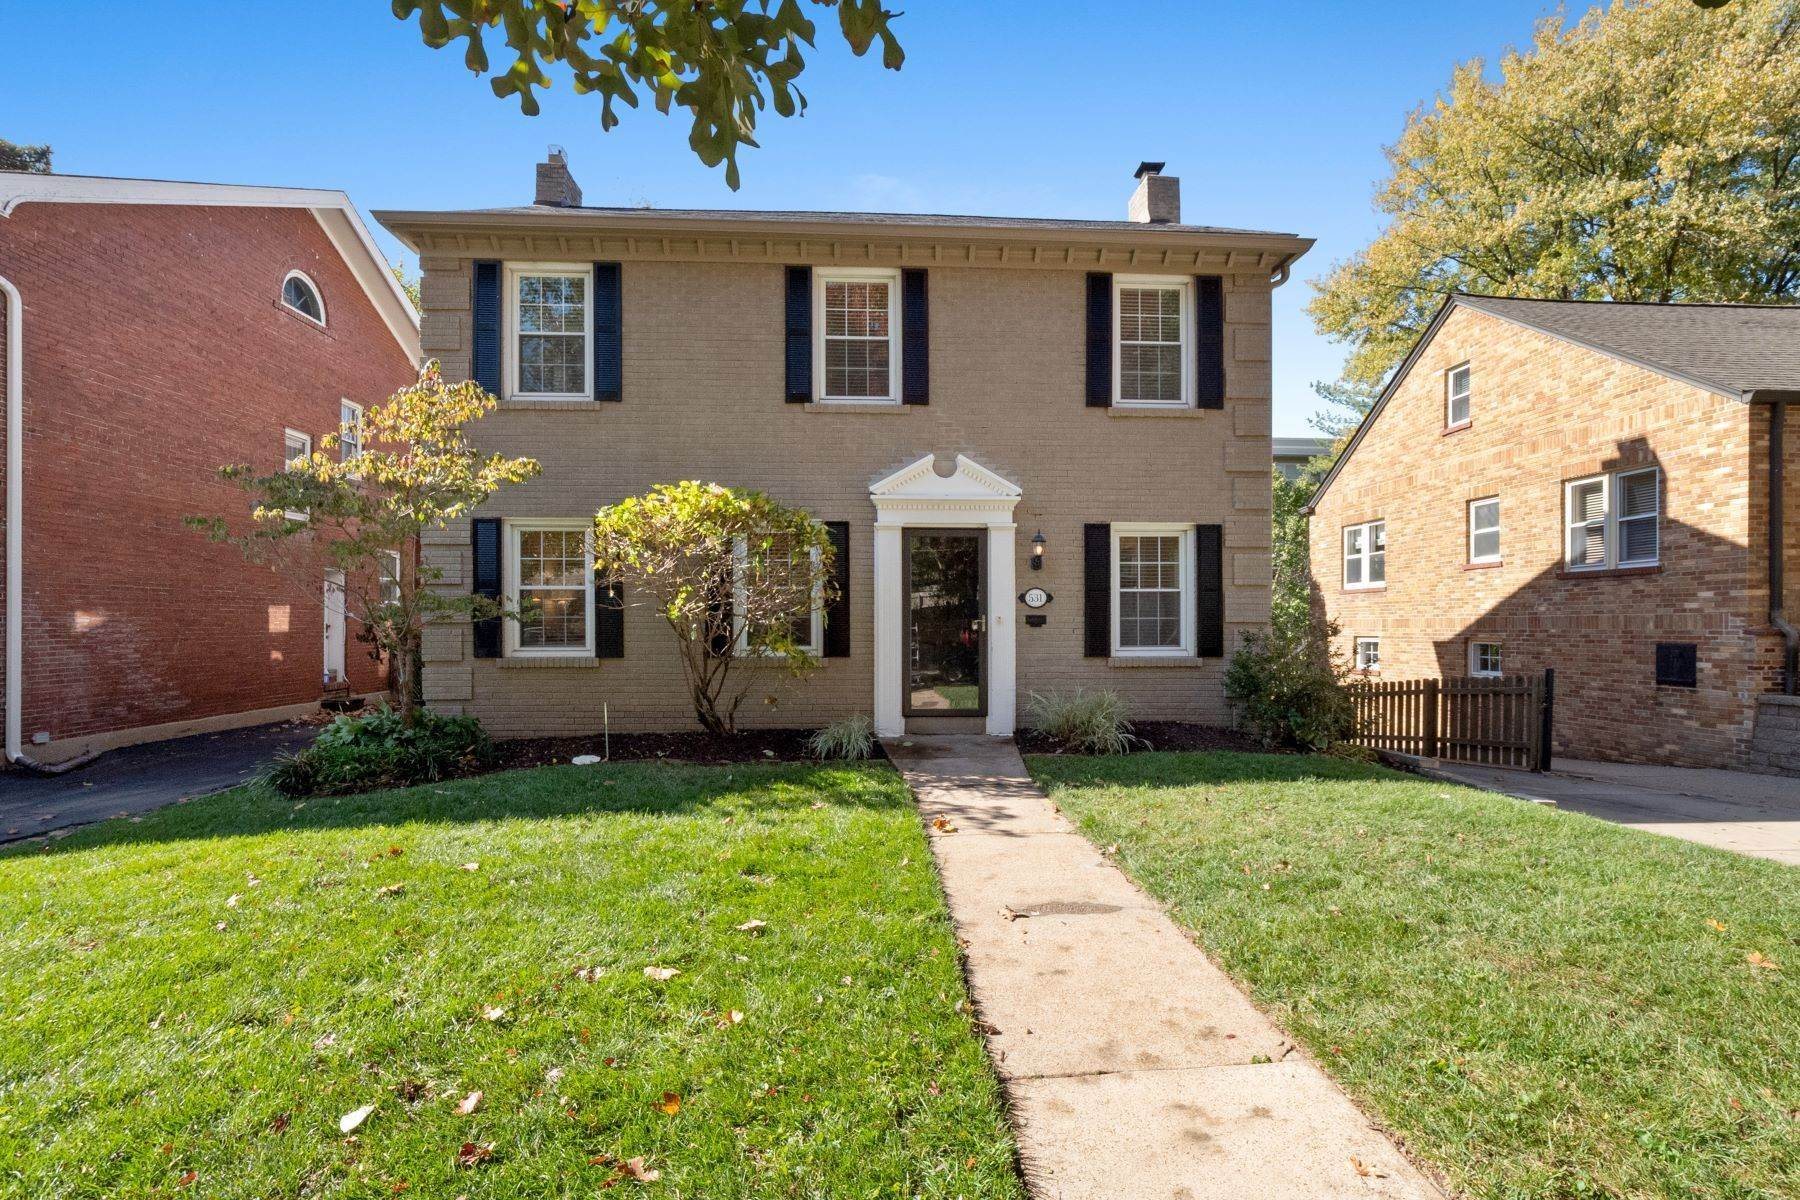 Single Family Homes for Sale at Modern Touches on Historic Charm 531 North Central Avenue University City, Missouri 63130 United States